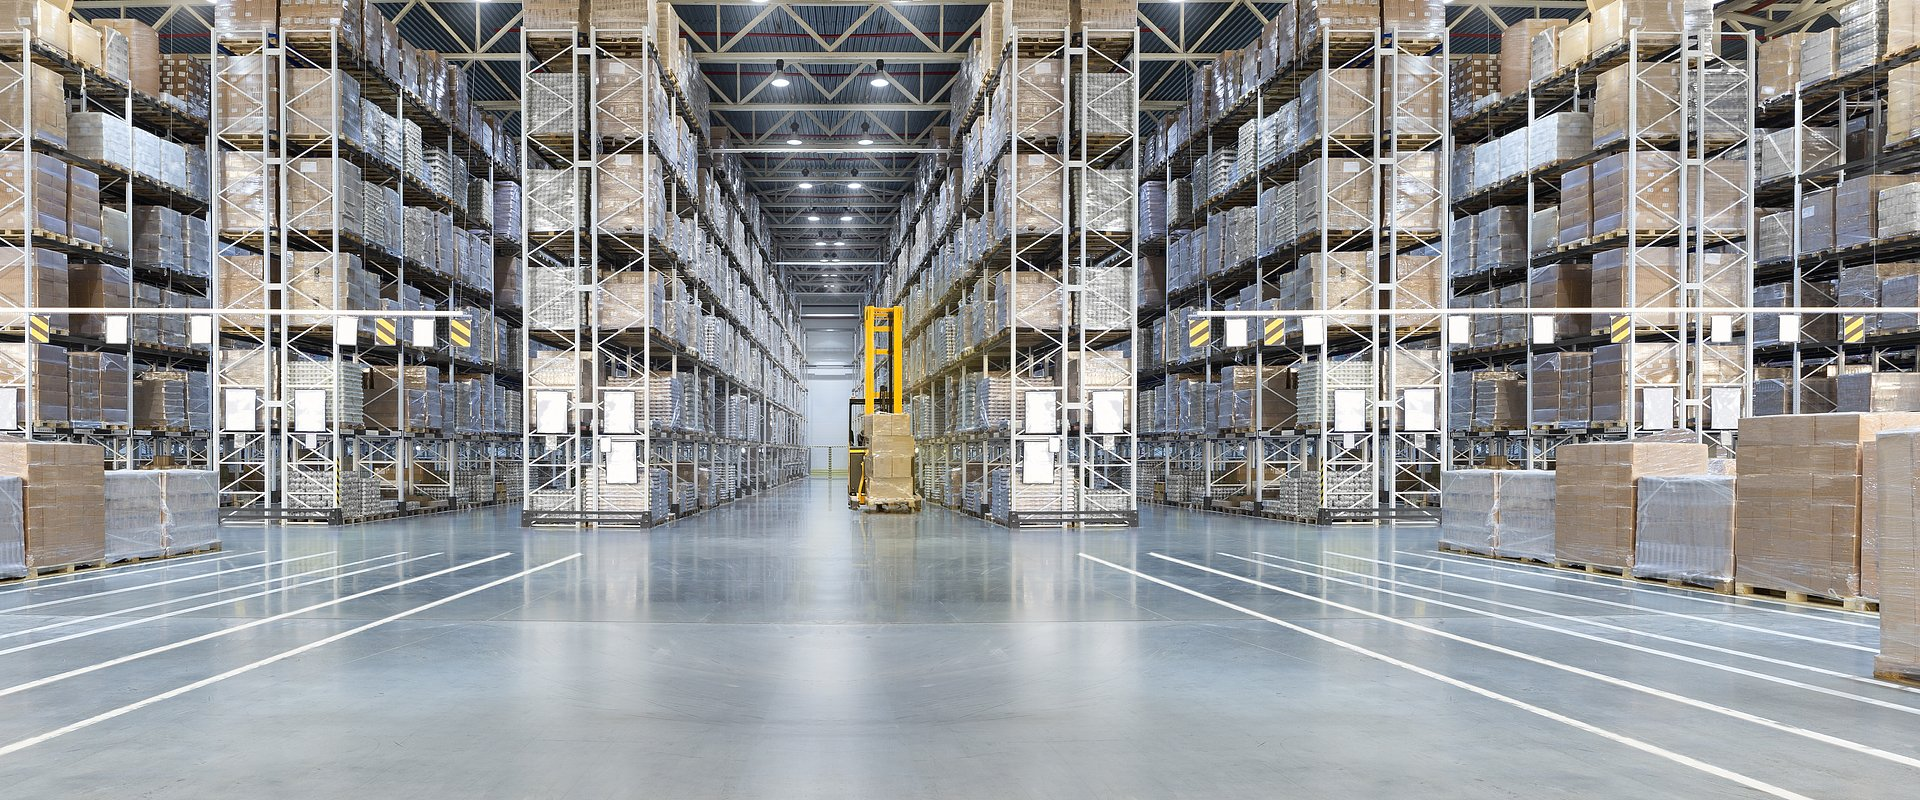 Industrial & Logistics Department at BNP Paribas Real Estate Poland is growing